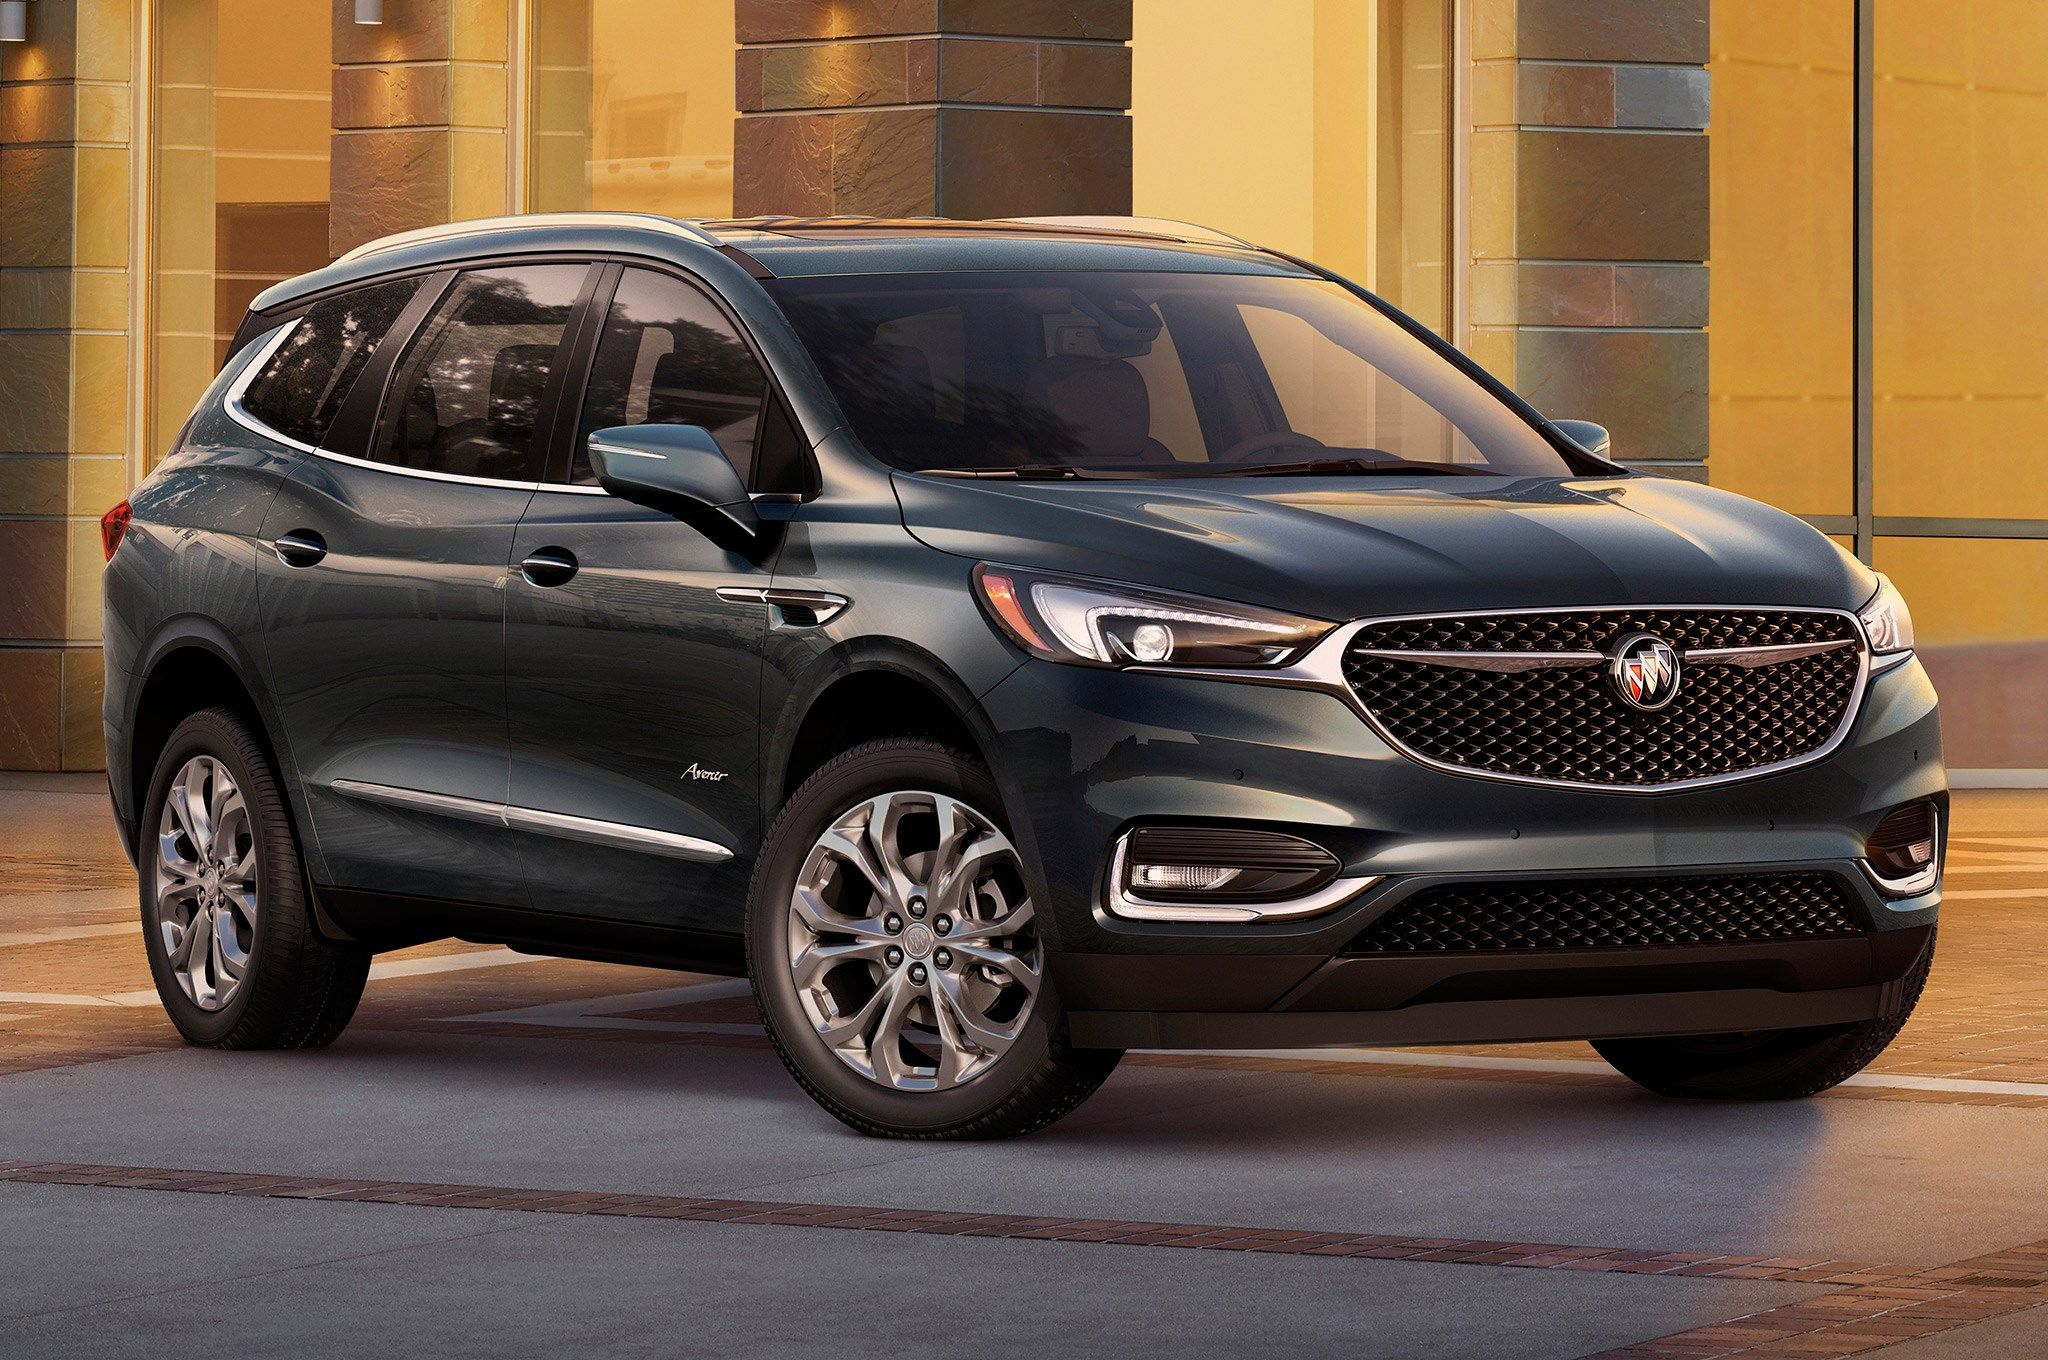 2020 Buick Enclave Review, Interior and Specs Rumors - New ...